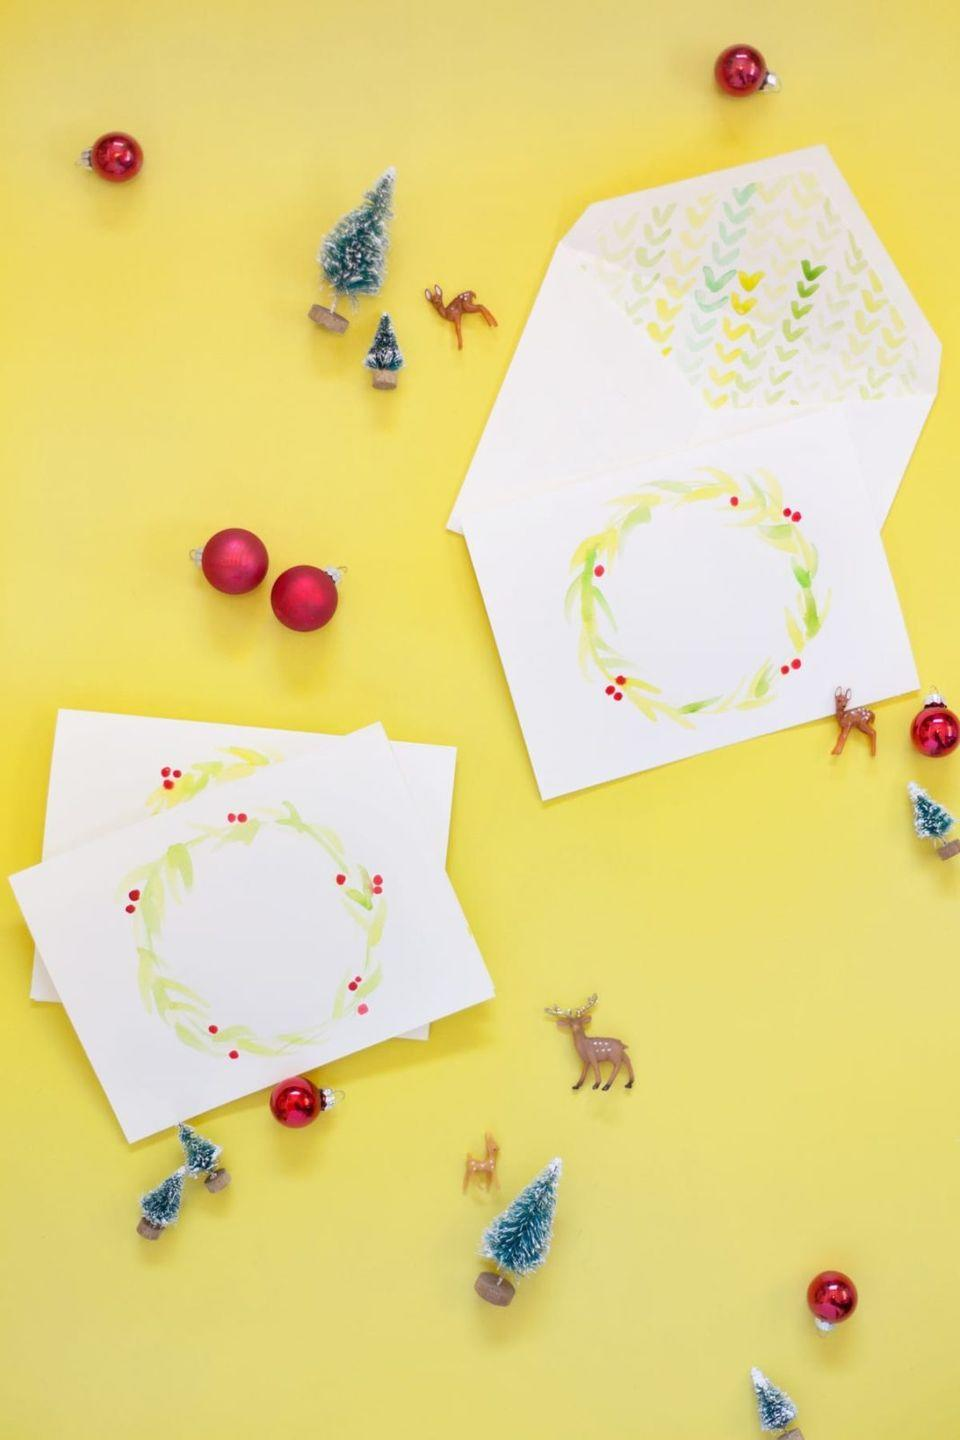 """<p>This design proves you don't have to get too intricate with watercolors to create an impressive Christmas card. (Though you will get bonus points for crafting matching envelope liners.) </p><p><em>Get the tutorial at <a href=""""https://lovelyindeed.com/diy-watercolor-holiday-cards-envelope-liners/"""" rel=""""nofollow noopener"""" target=""""_blank"""" data-ylk=""""slk:Lovely Indeed"""" class=""""link rapid-noclick-resp"""">Lovely Indeed</a>.</em></p><p><a class=""""link rapid-noclick-resp"""" href=""""https://www.amazon.com/Watercolor-Paint-Joyful-Colors-Lightweight/dp/B07QLLJP3B/?tag=syn-yahoo-20&ascsubtag=%5Bartid%7C10072.g.34351112%5Bsrc%7Cyahoo-us"""" rel=""""nofollow noopener"""" target=""""_blank"""" data-ylk=""""slk:SHOP WATERCOLORS"""">SHOP WATERCOLORS</a></p>"""